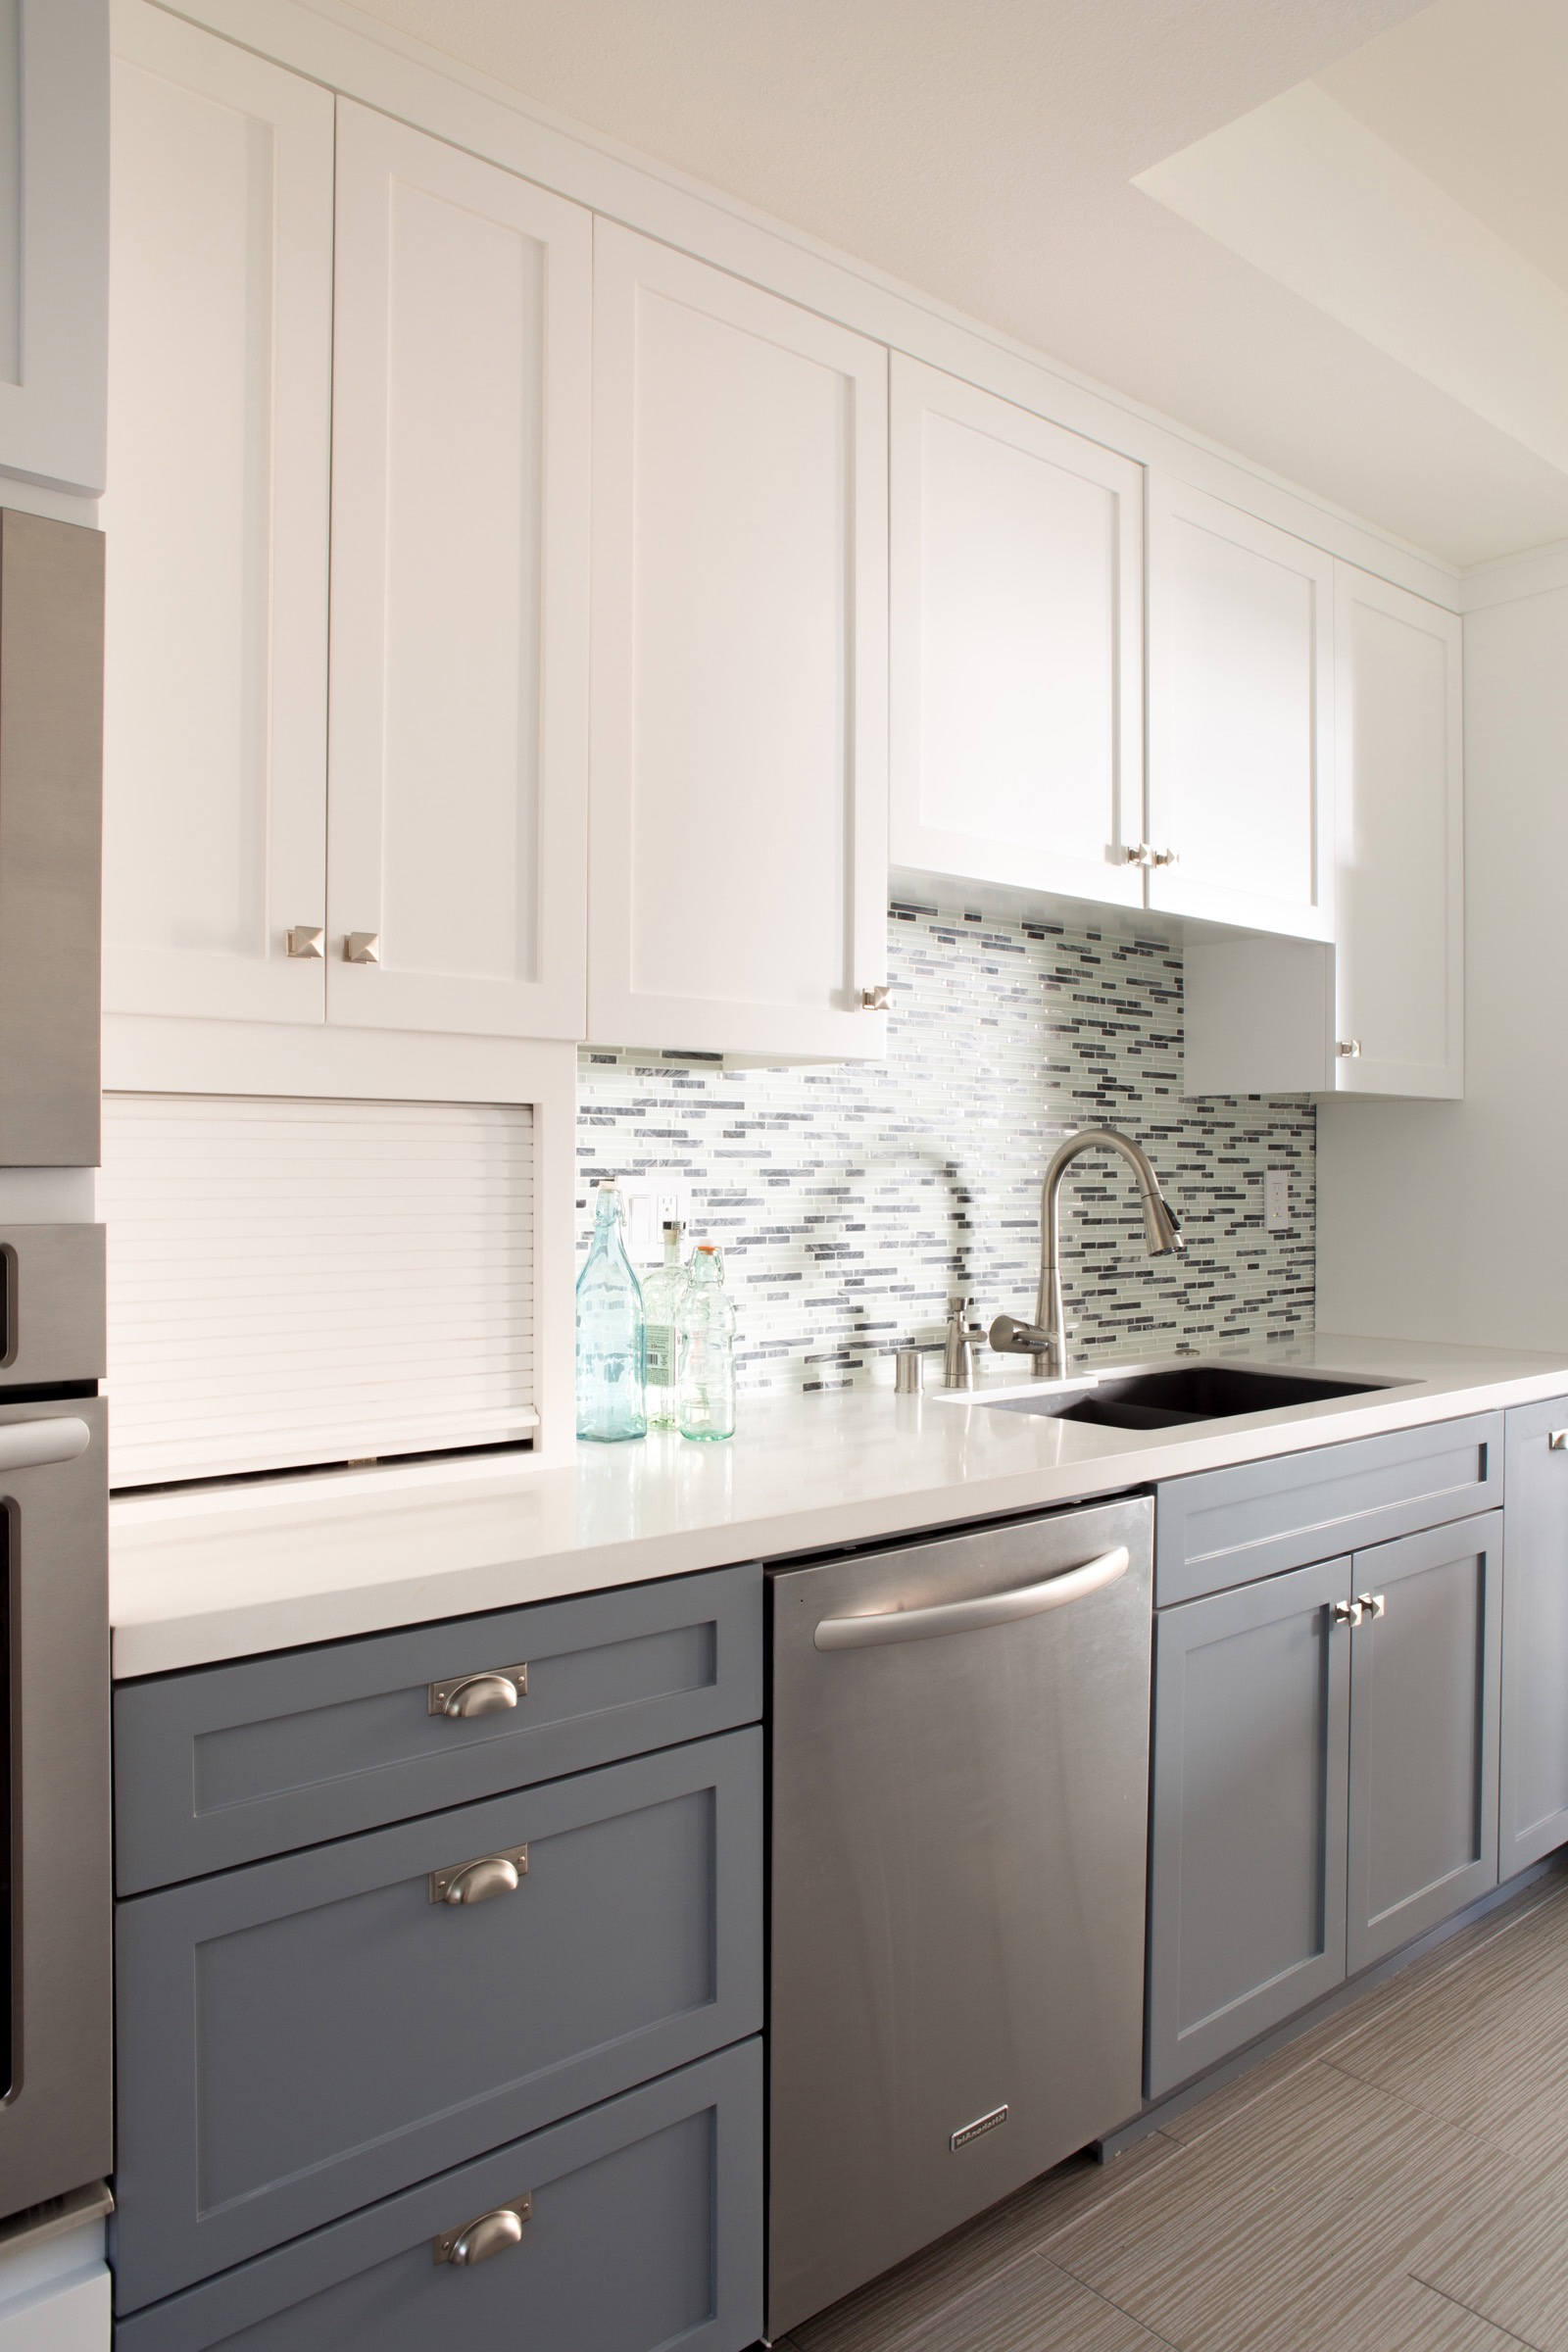 Two Toned Color Kitchen Cabinets (View 2 of 18)